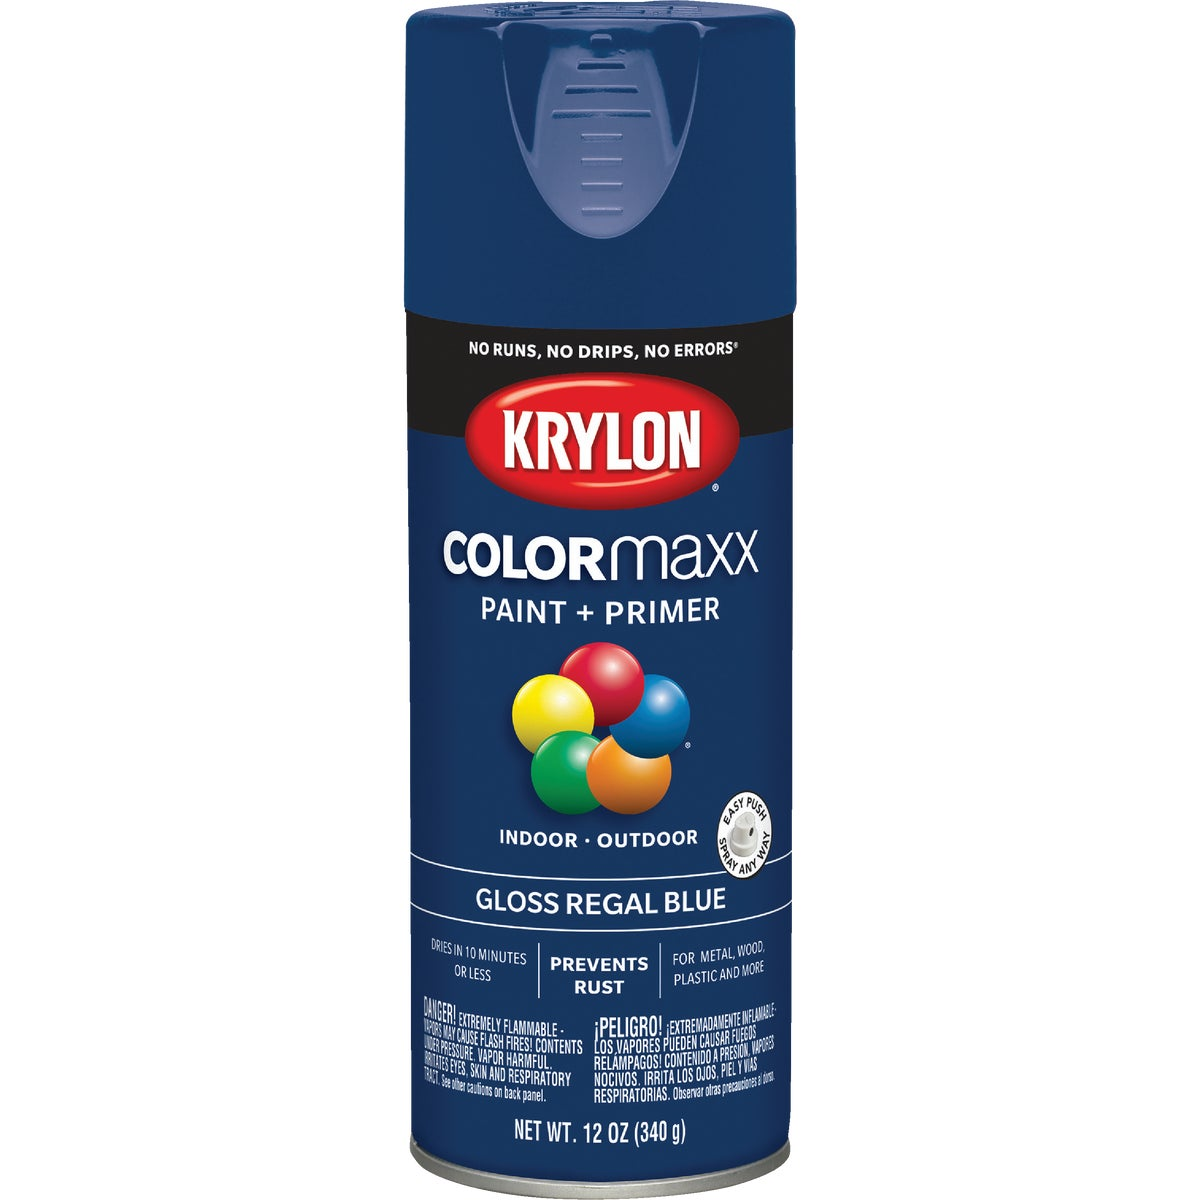 GLS RGL BLUE SPRAY PAINT - 51901 by Krylon/consumer Div